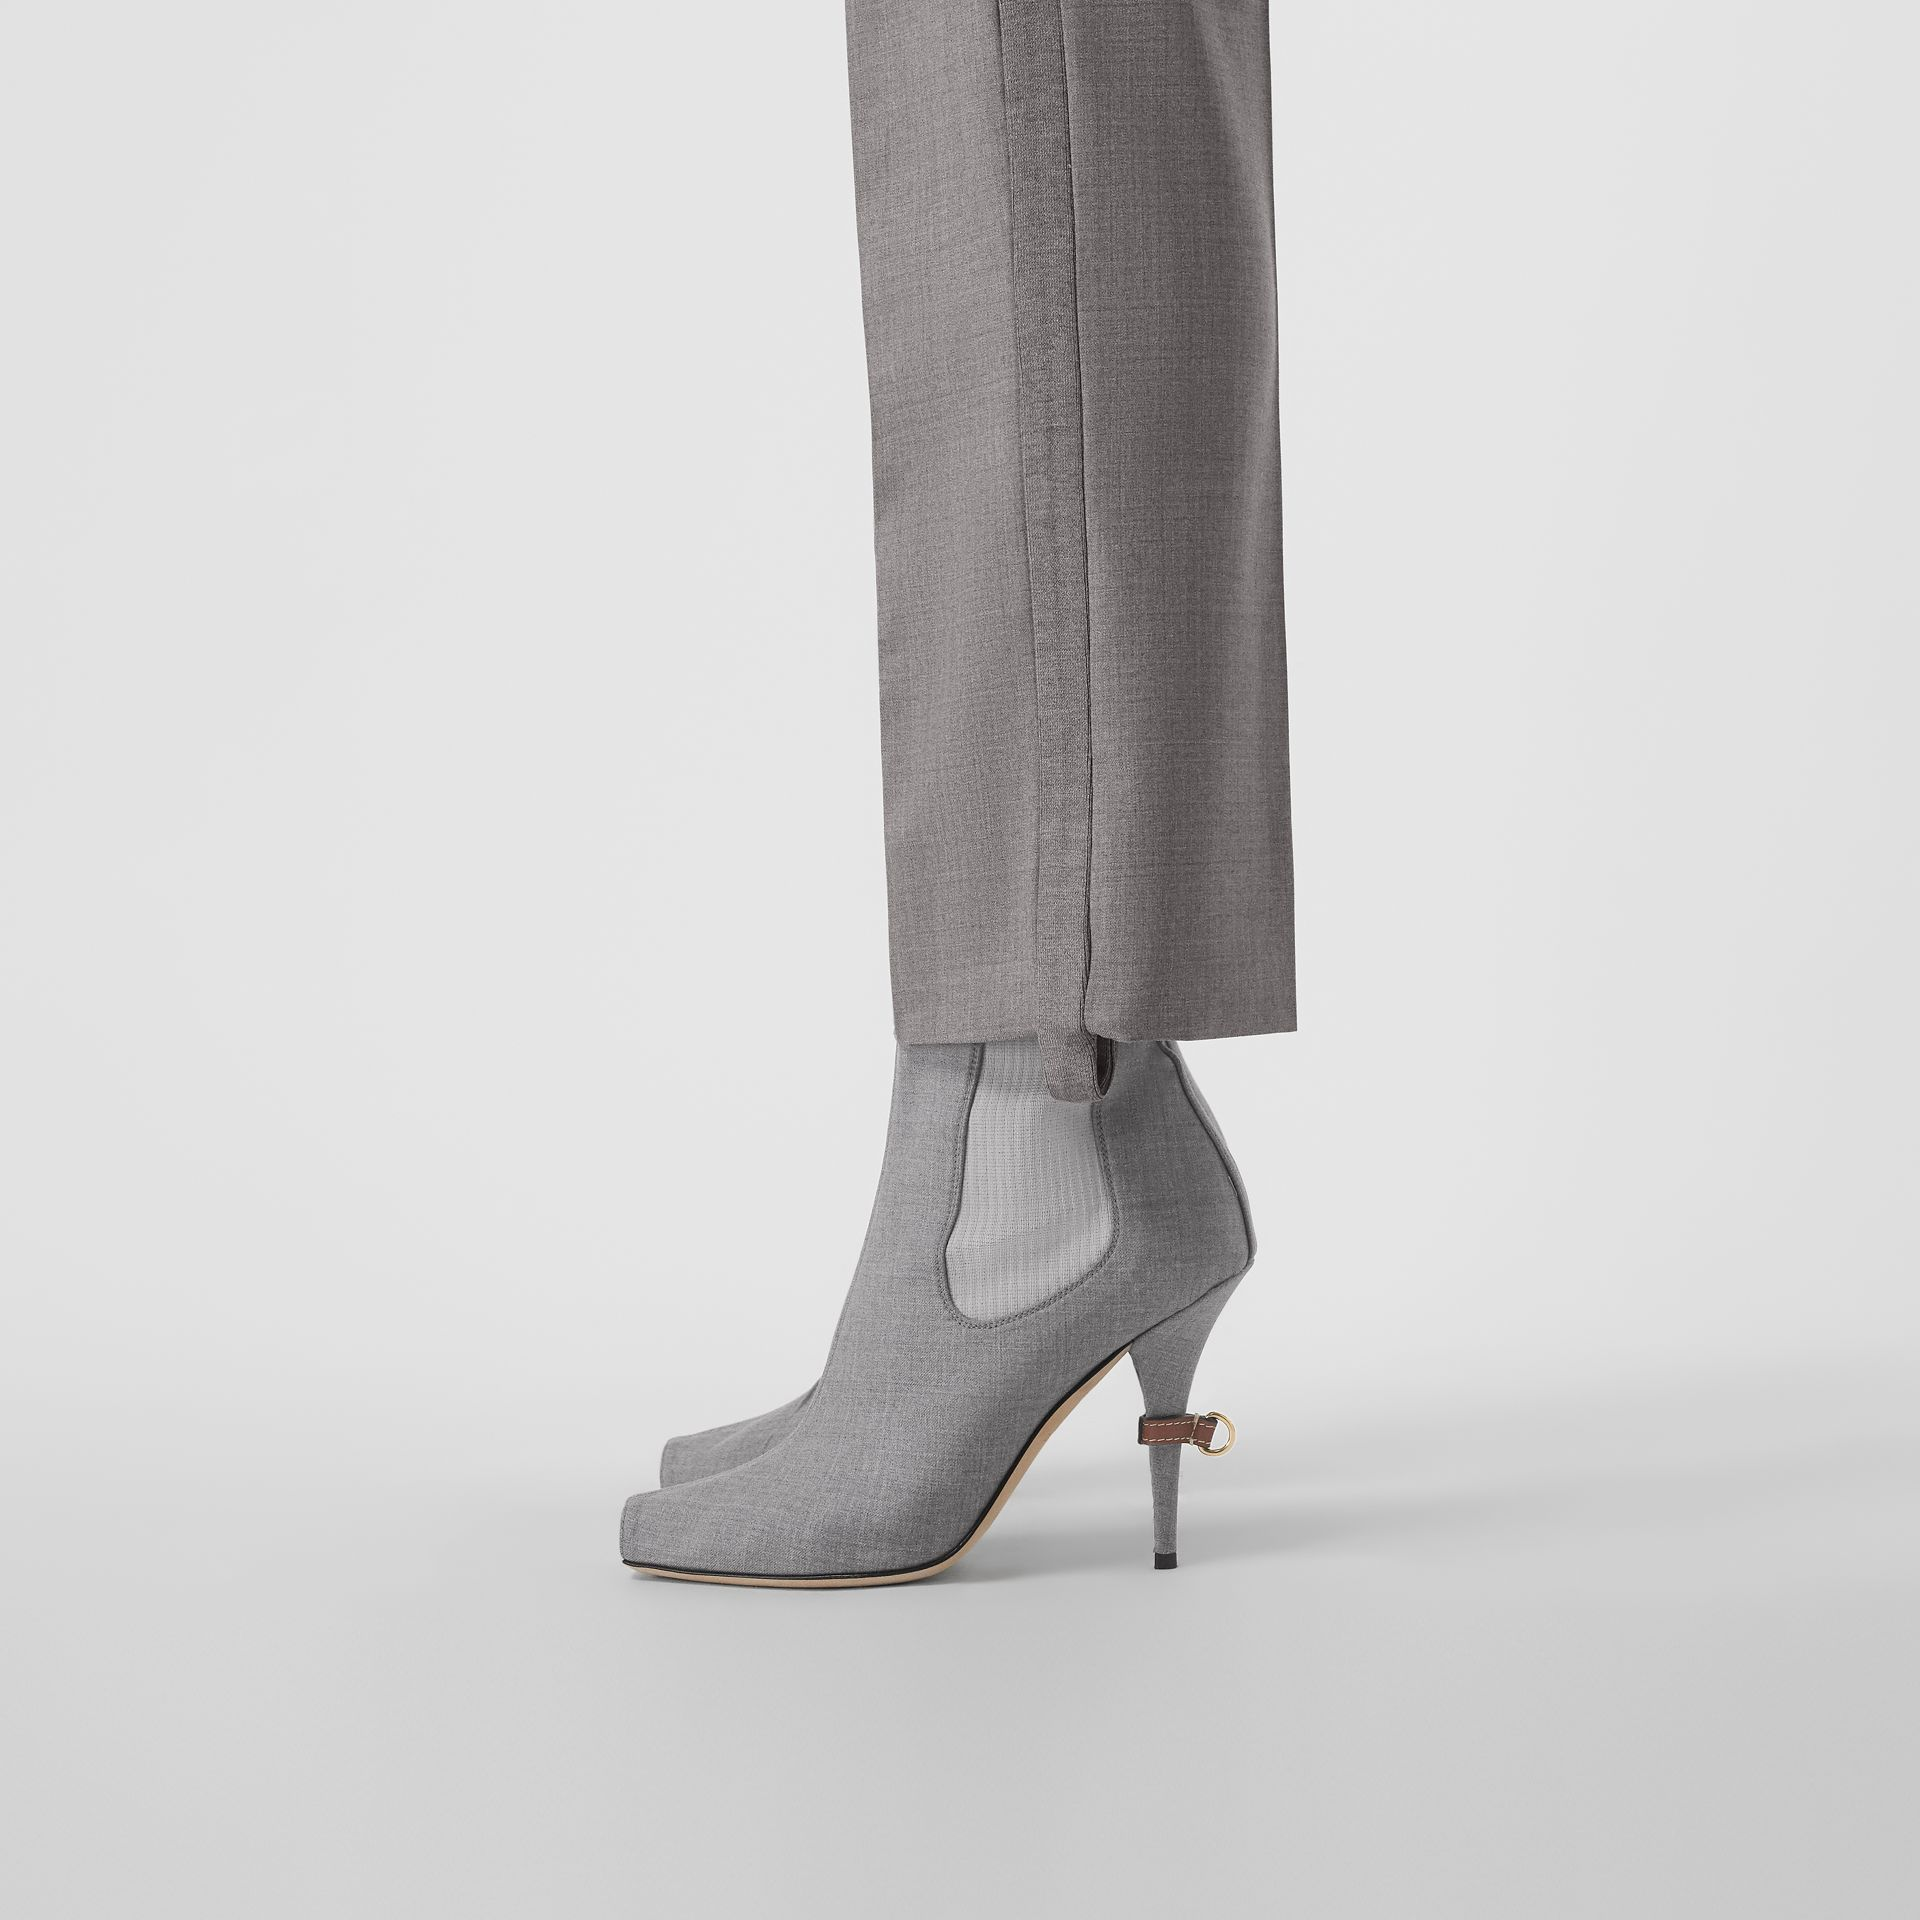 Stretch Wool Blend Peep-toe Boots in Flint - Women | Burberry Singapore - gallery image 2